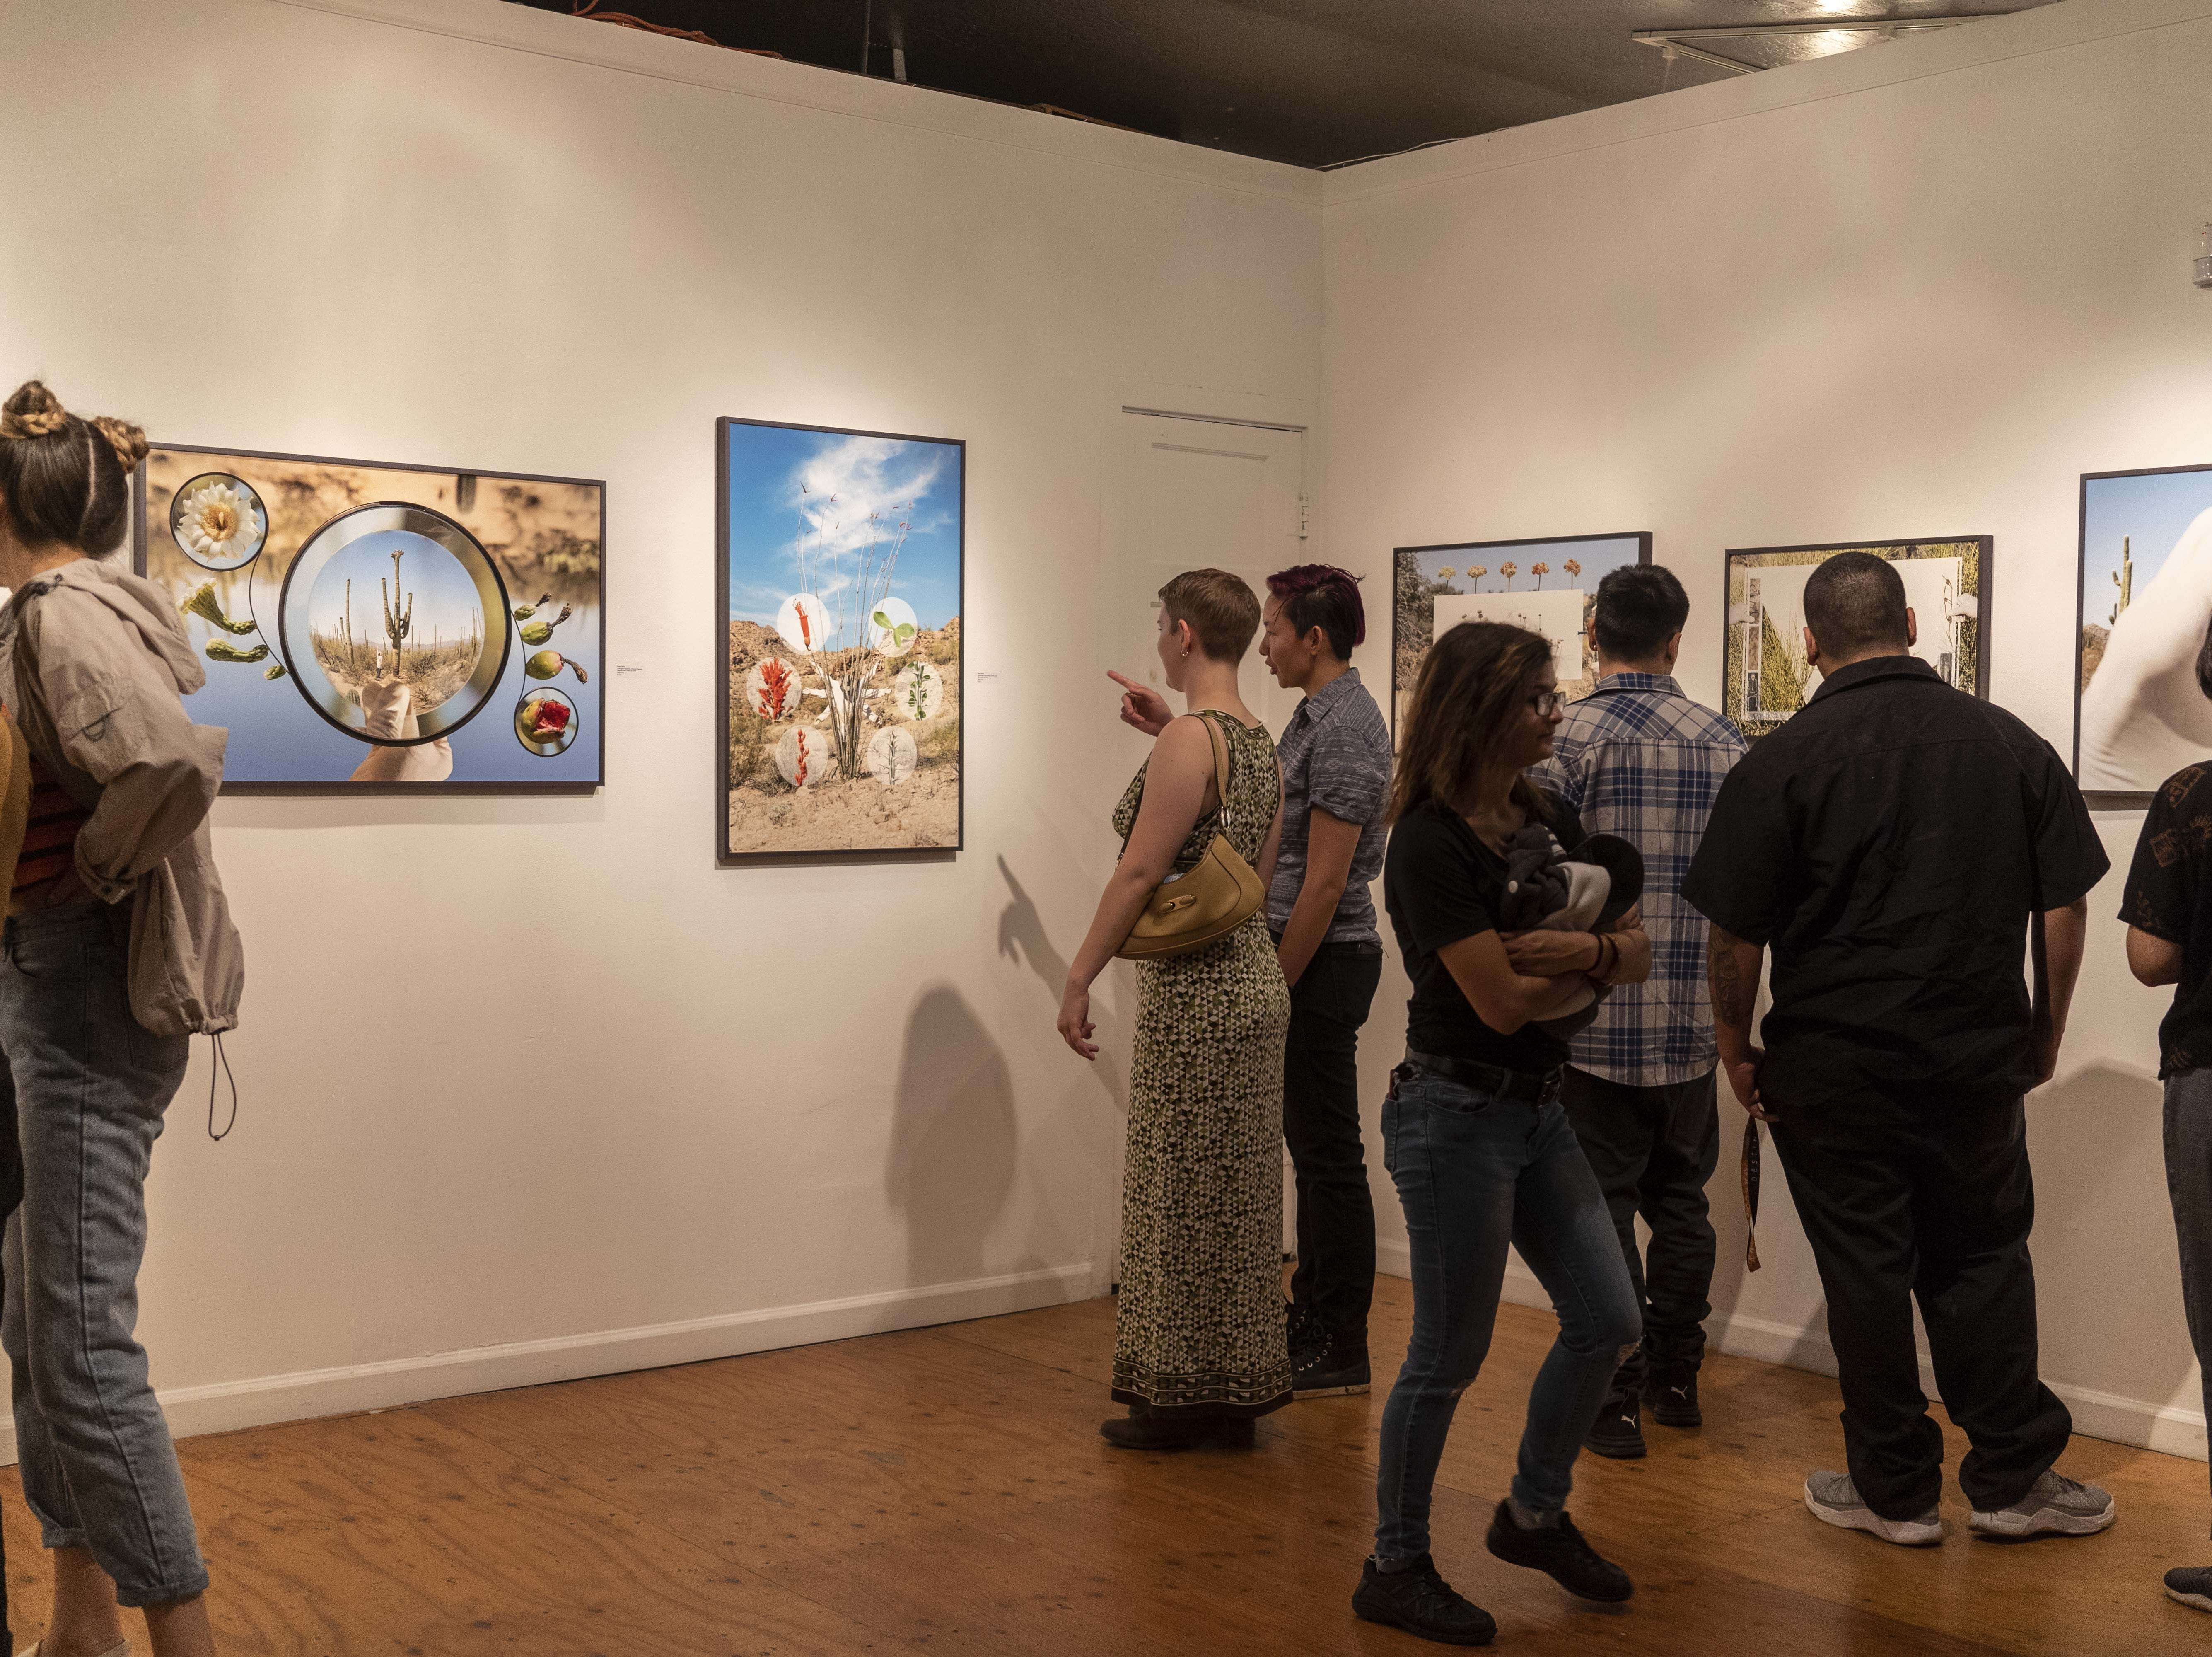 People enjoy artwork during the First Friday Art walk, on Roosevelt Street in Downtown Phoenix, on Oct. 5, 2018.